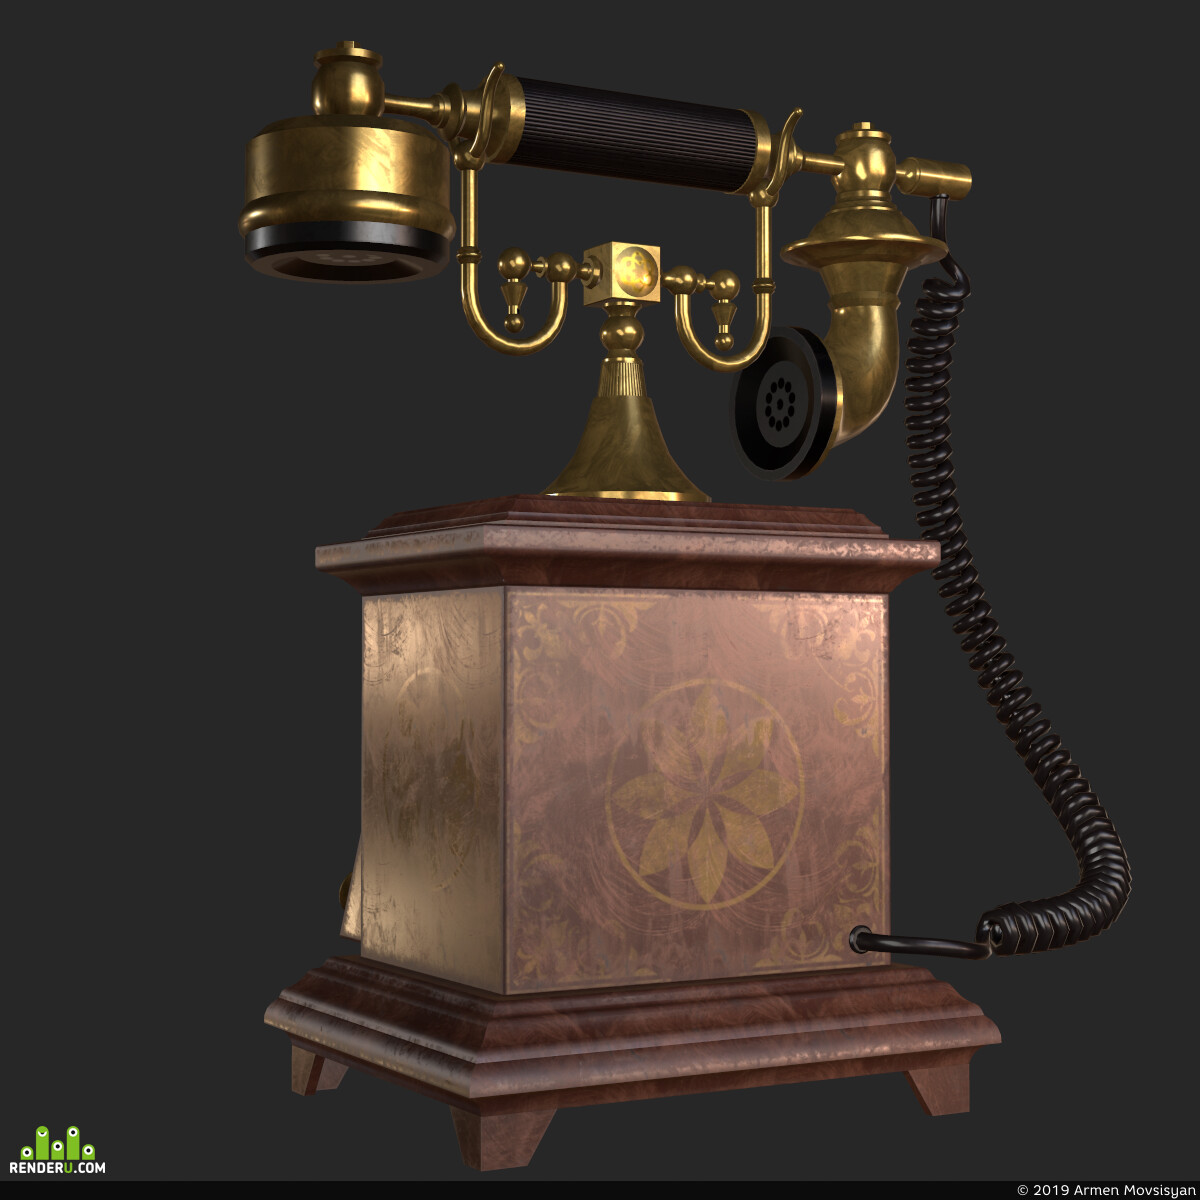 Old, telephone